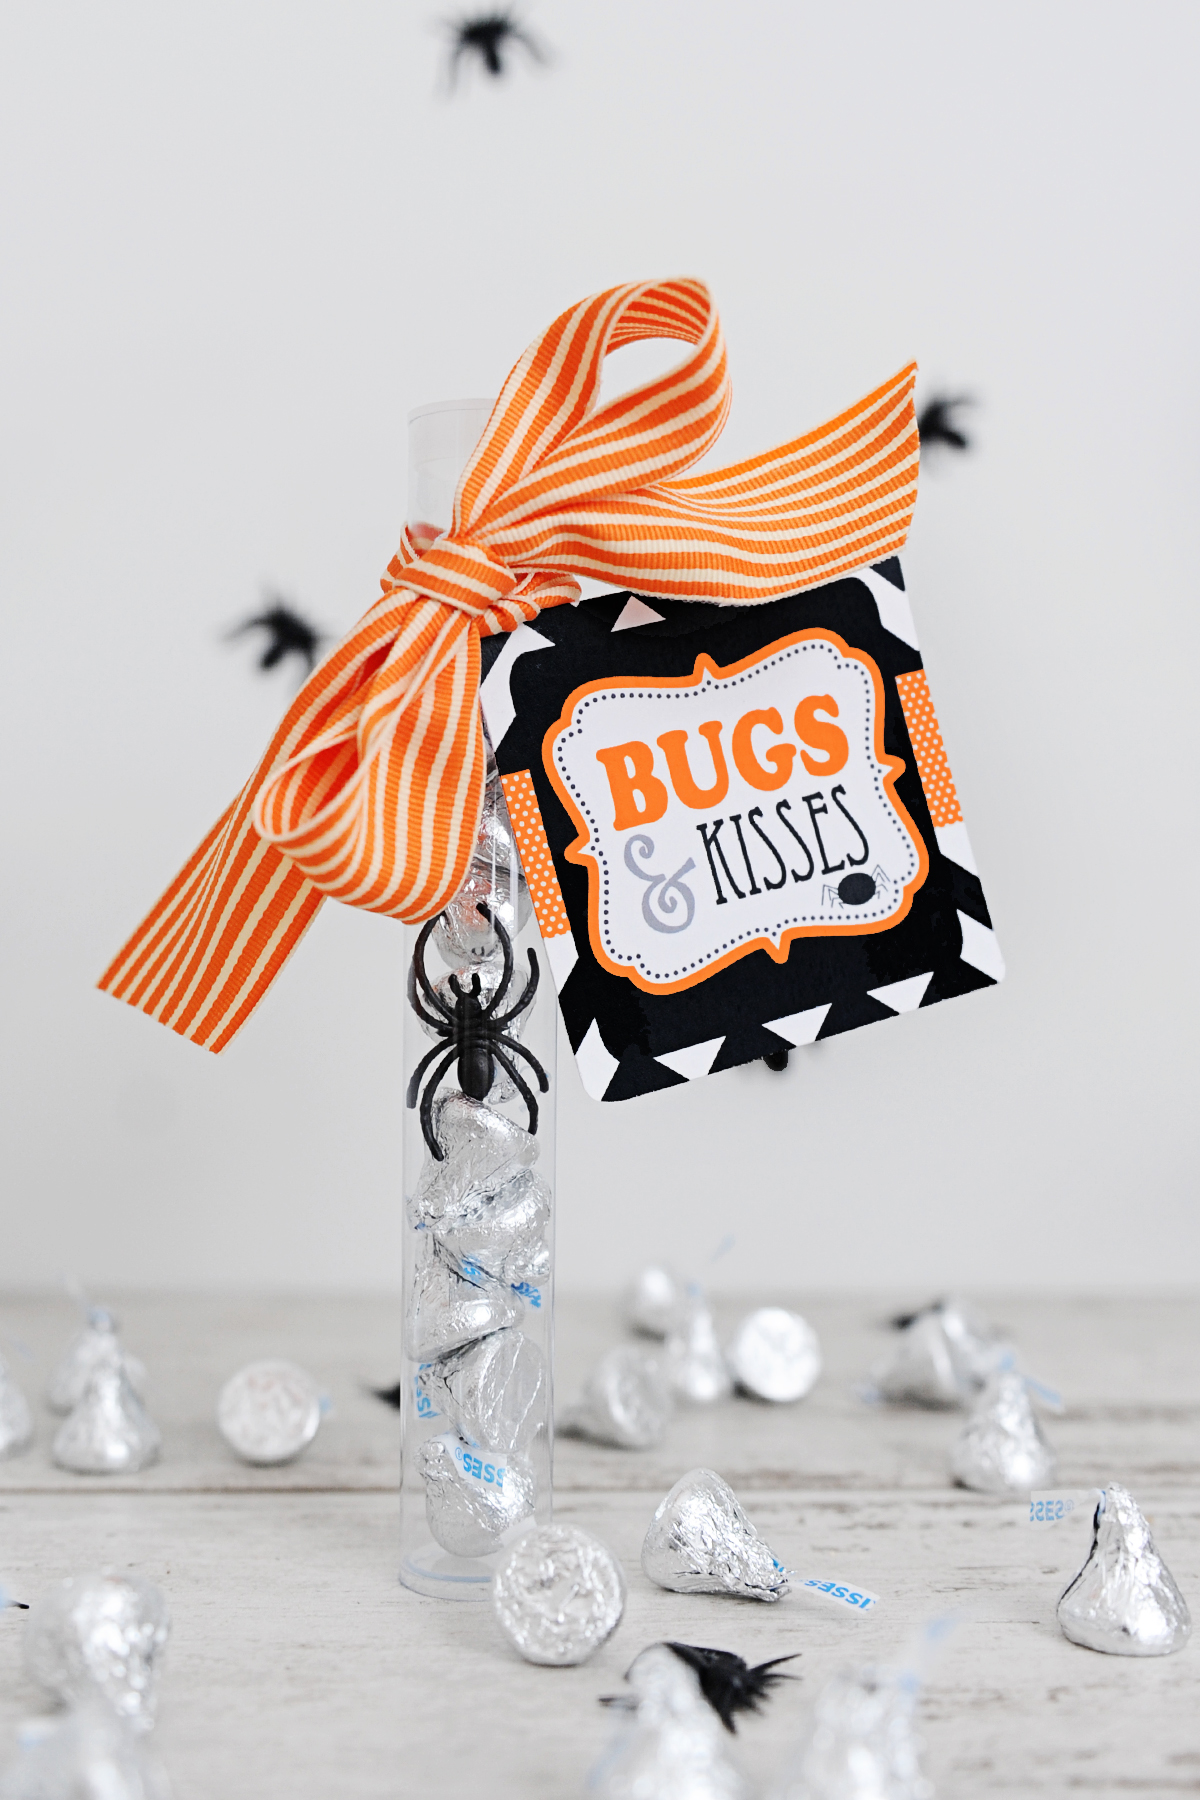 photo relating to Bugs and Kisses Printable named Lovely Insects and Kisses Printable for Halloween - Red